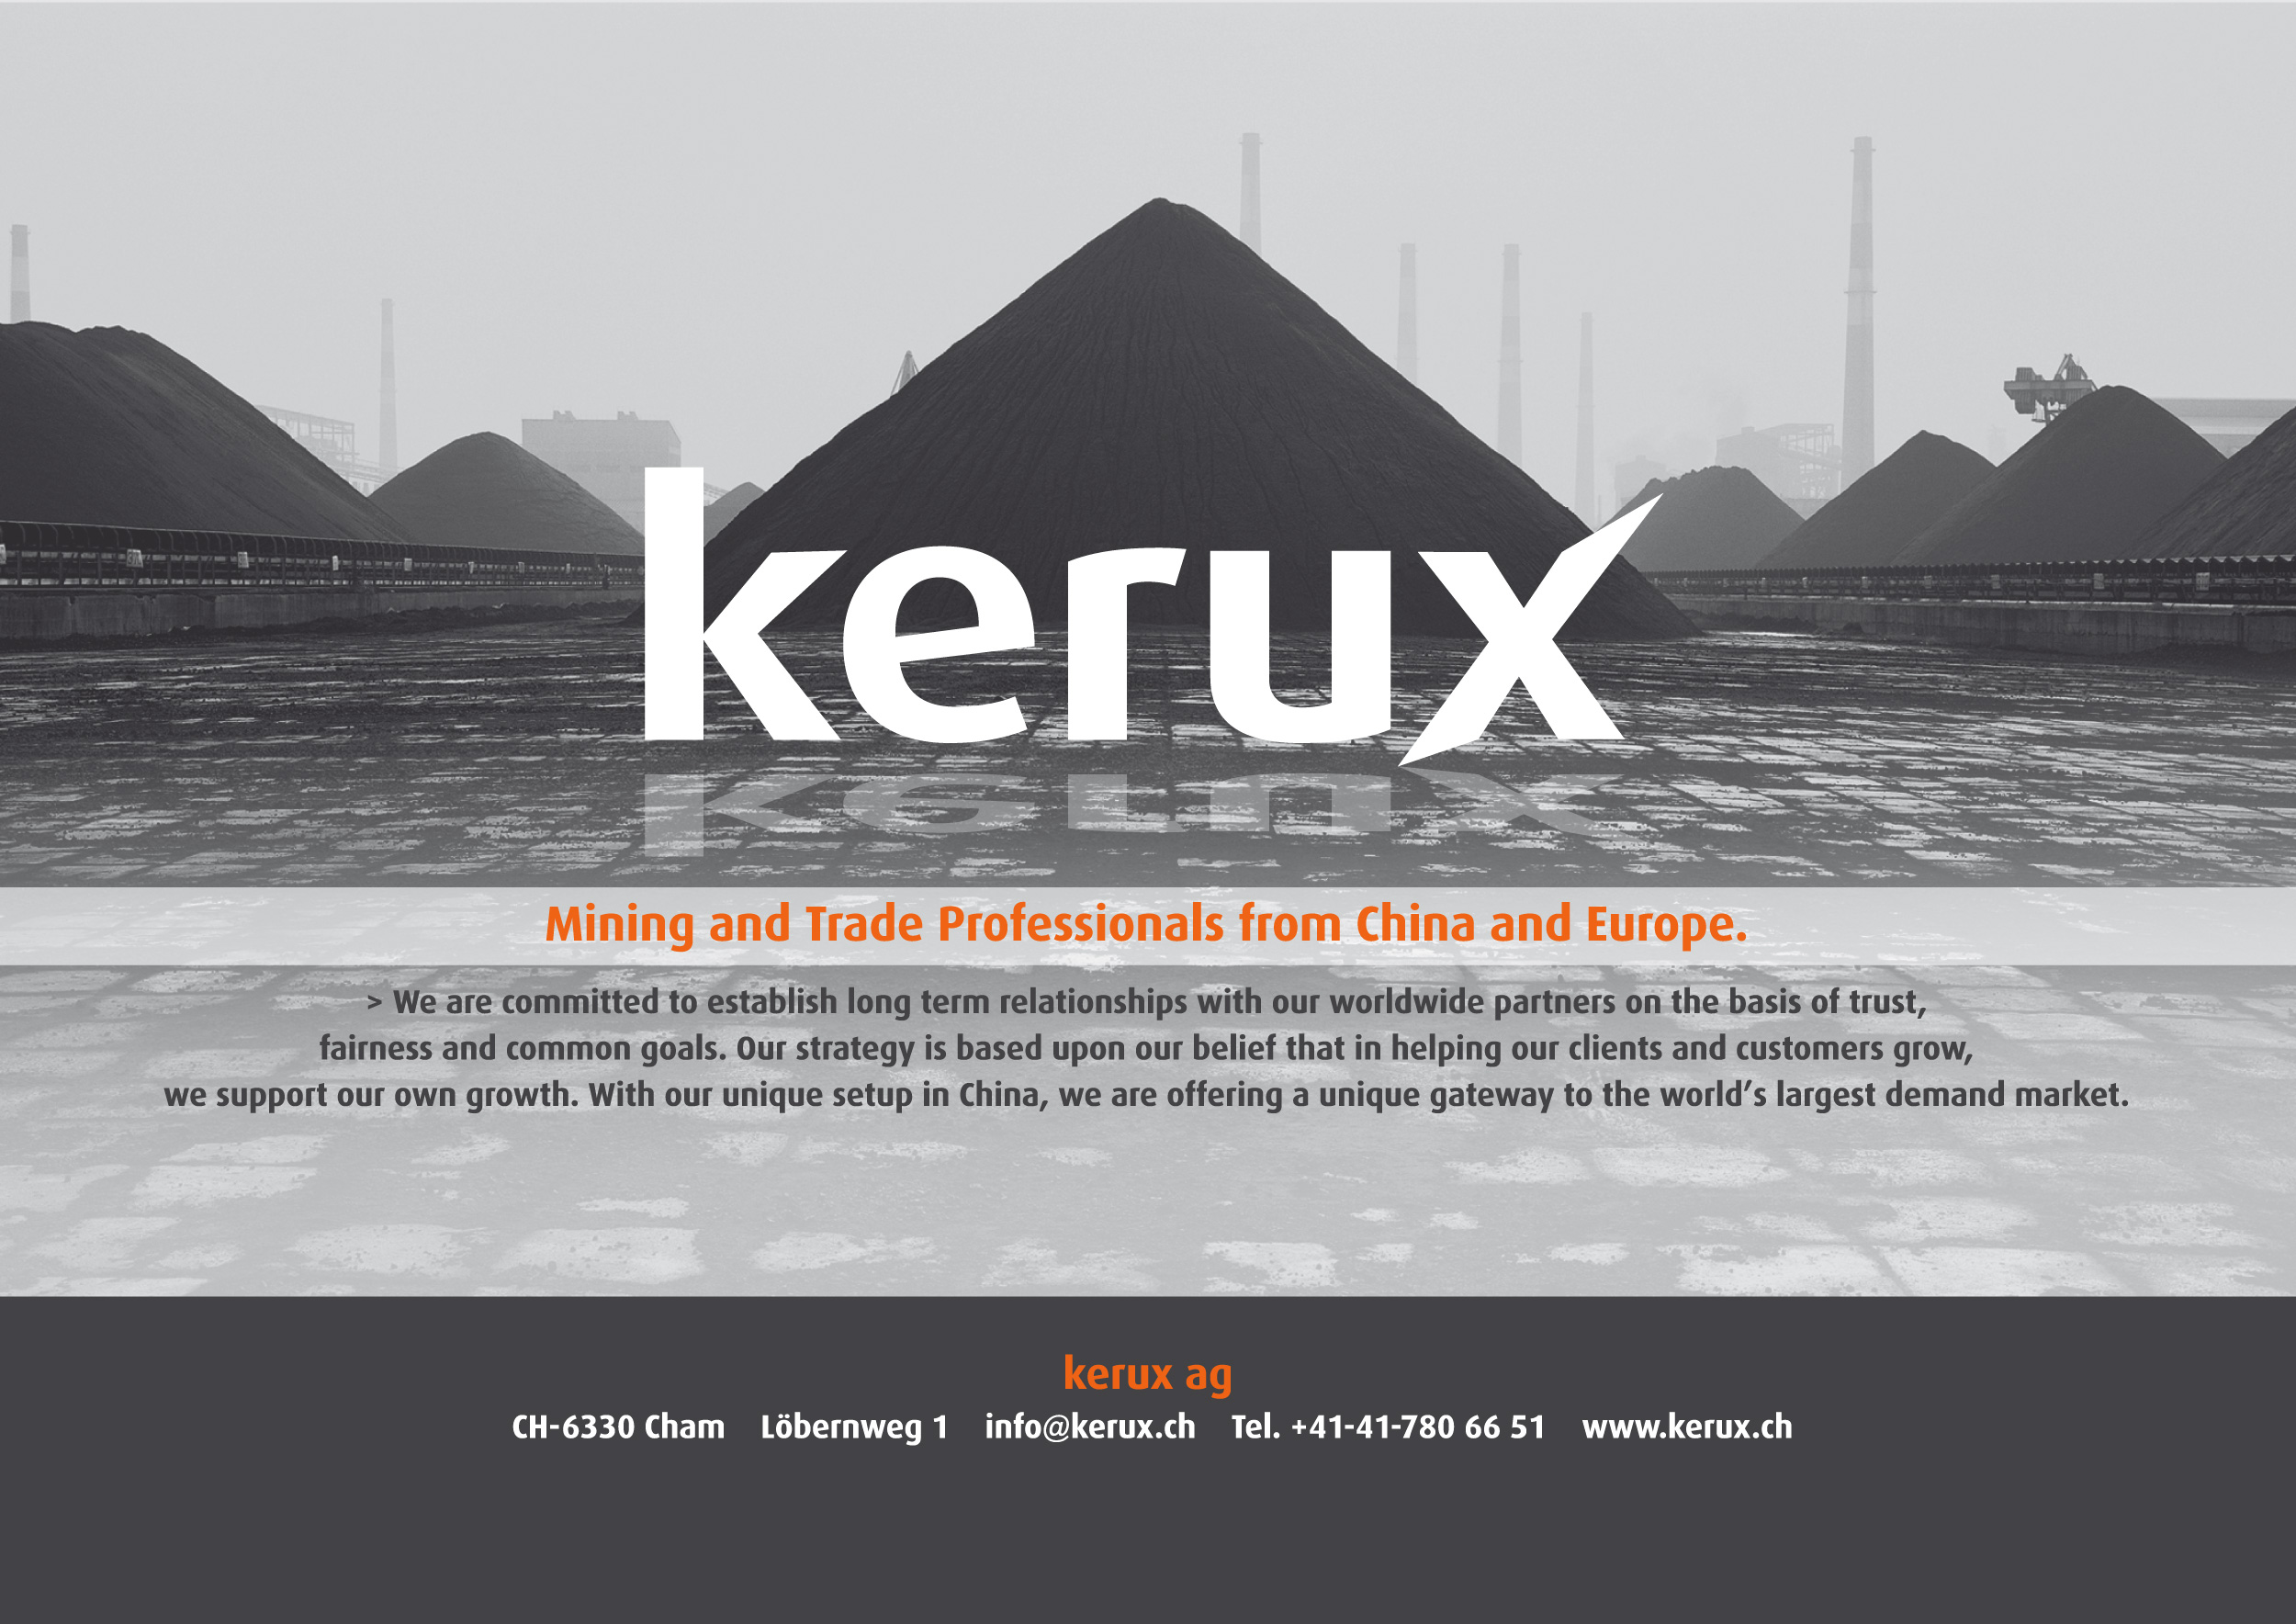 kerux - Mining and Trade Professionals from China and Europe